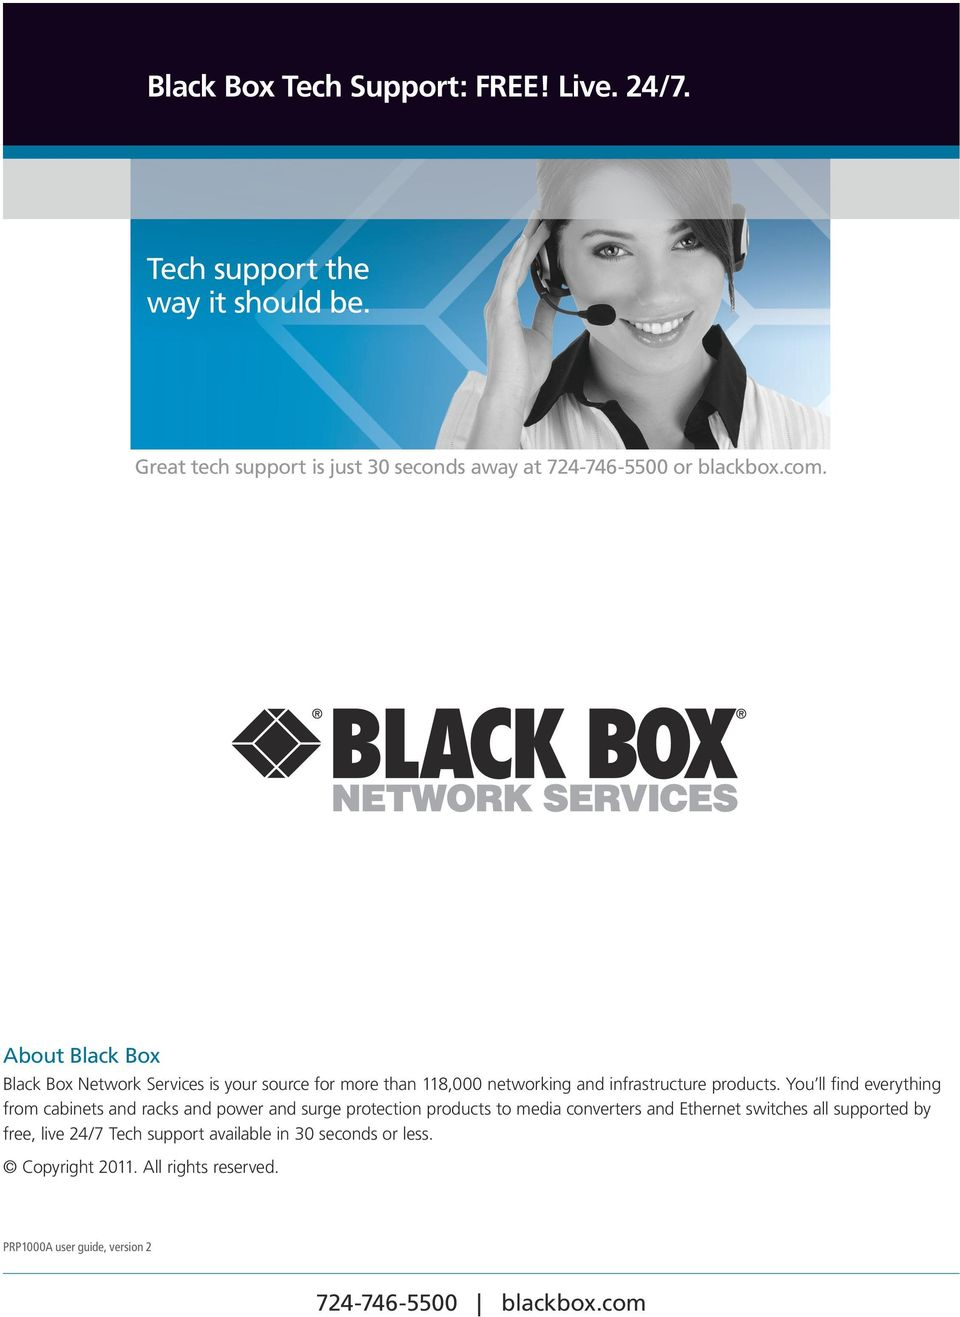 About Black Box Black Box Network Services is your source for more than 118,000 networking and infrastructure products.